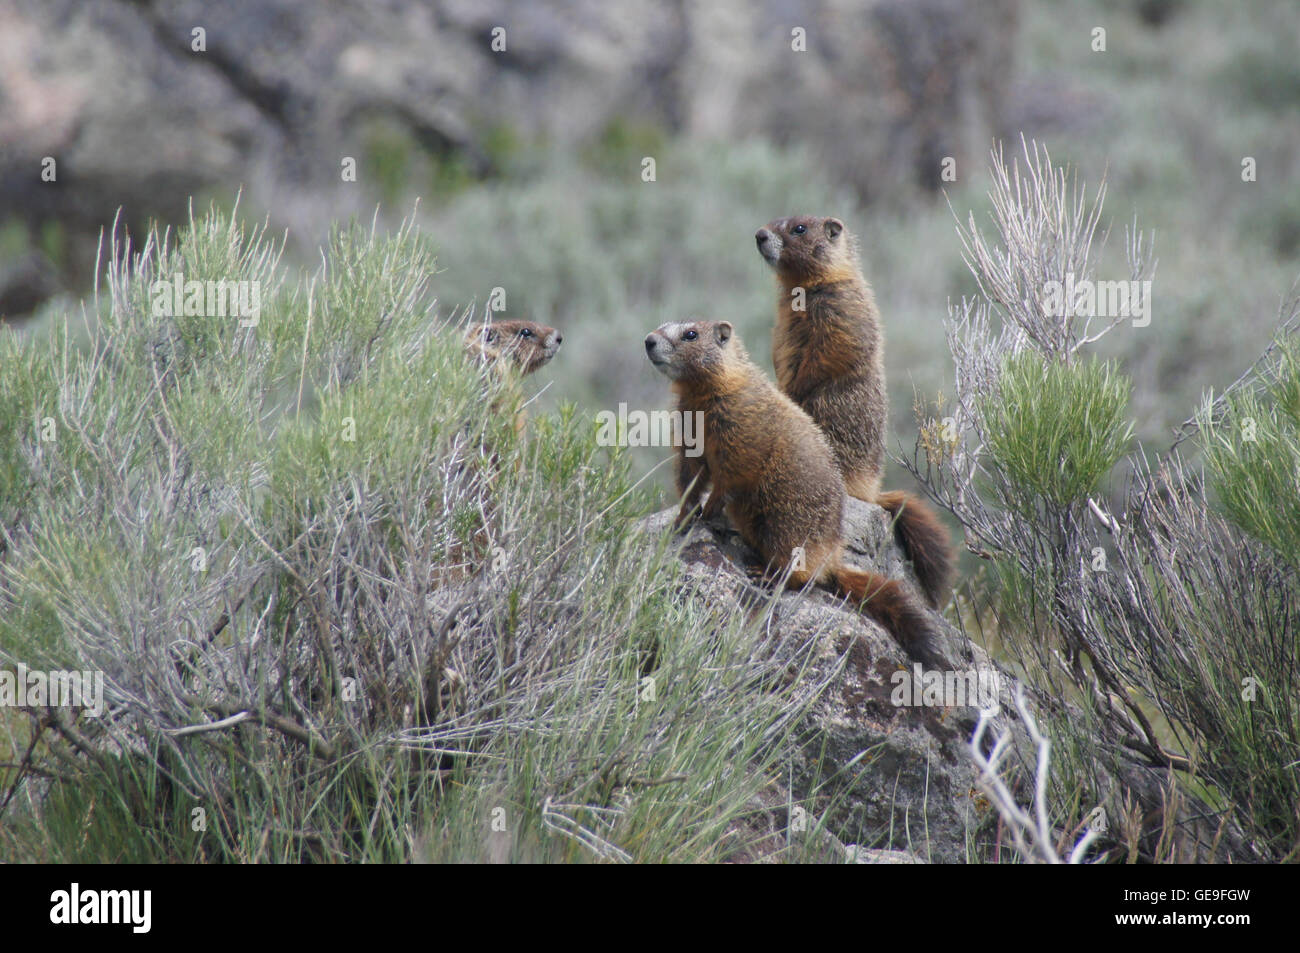 Yellow-bellied marmot (Marmota flaviventris) standing on a rock in Yellowstone. - Stock Image